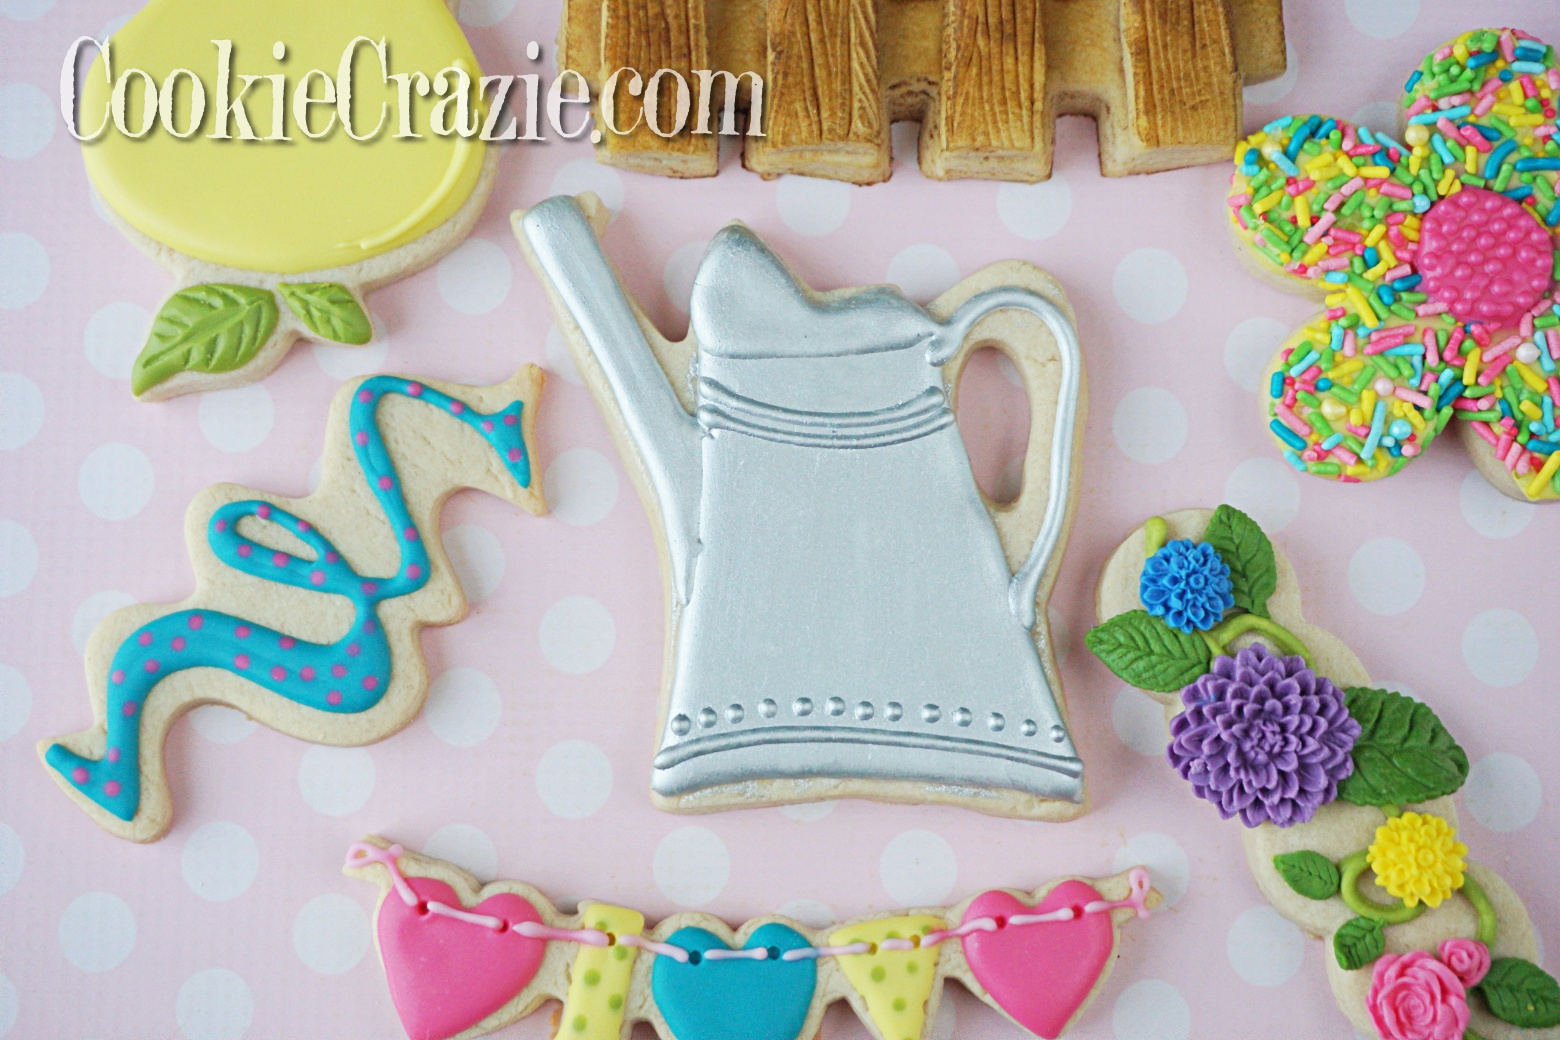 Watering Can Decorated Sugar Cookie YouTube video  HERE